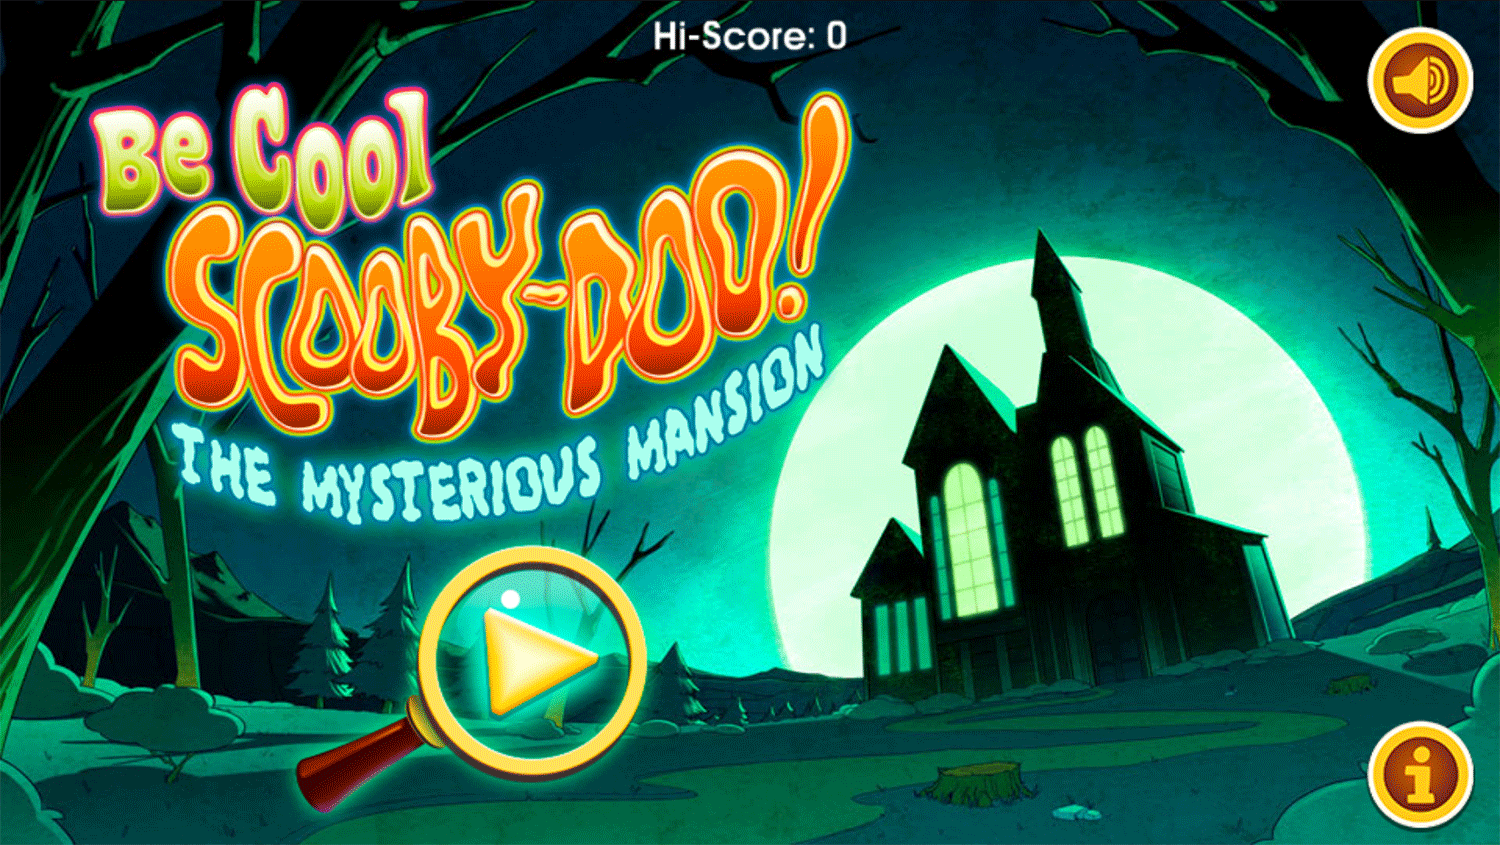 Be Cool Scooby Doo the Mysterious Mansion Welcome Screen Screenshot.